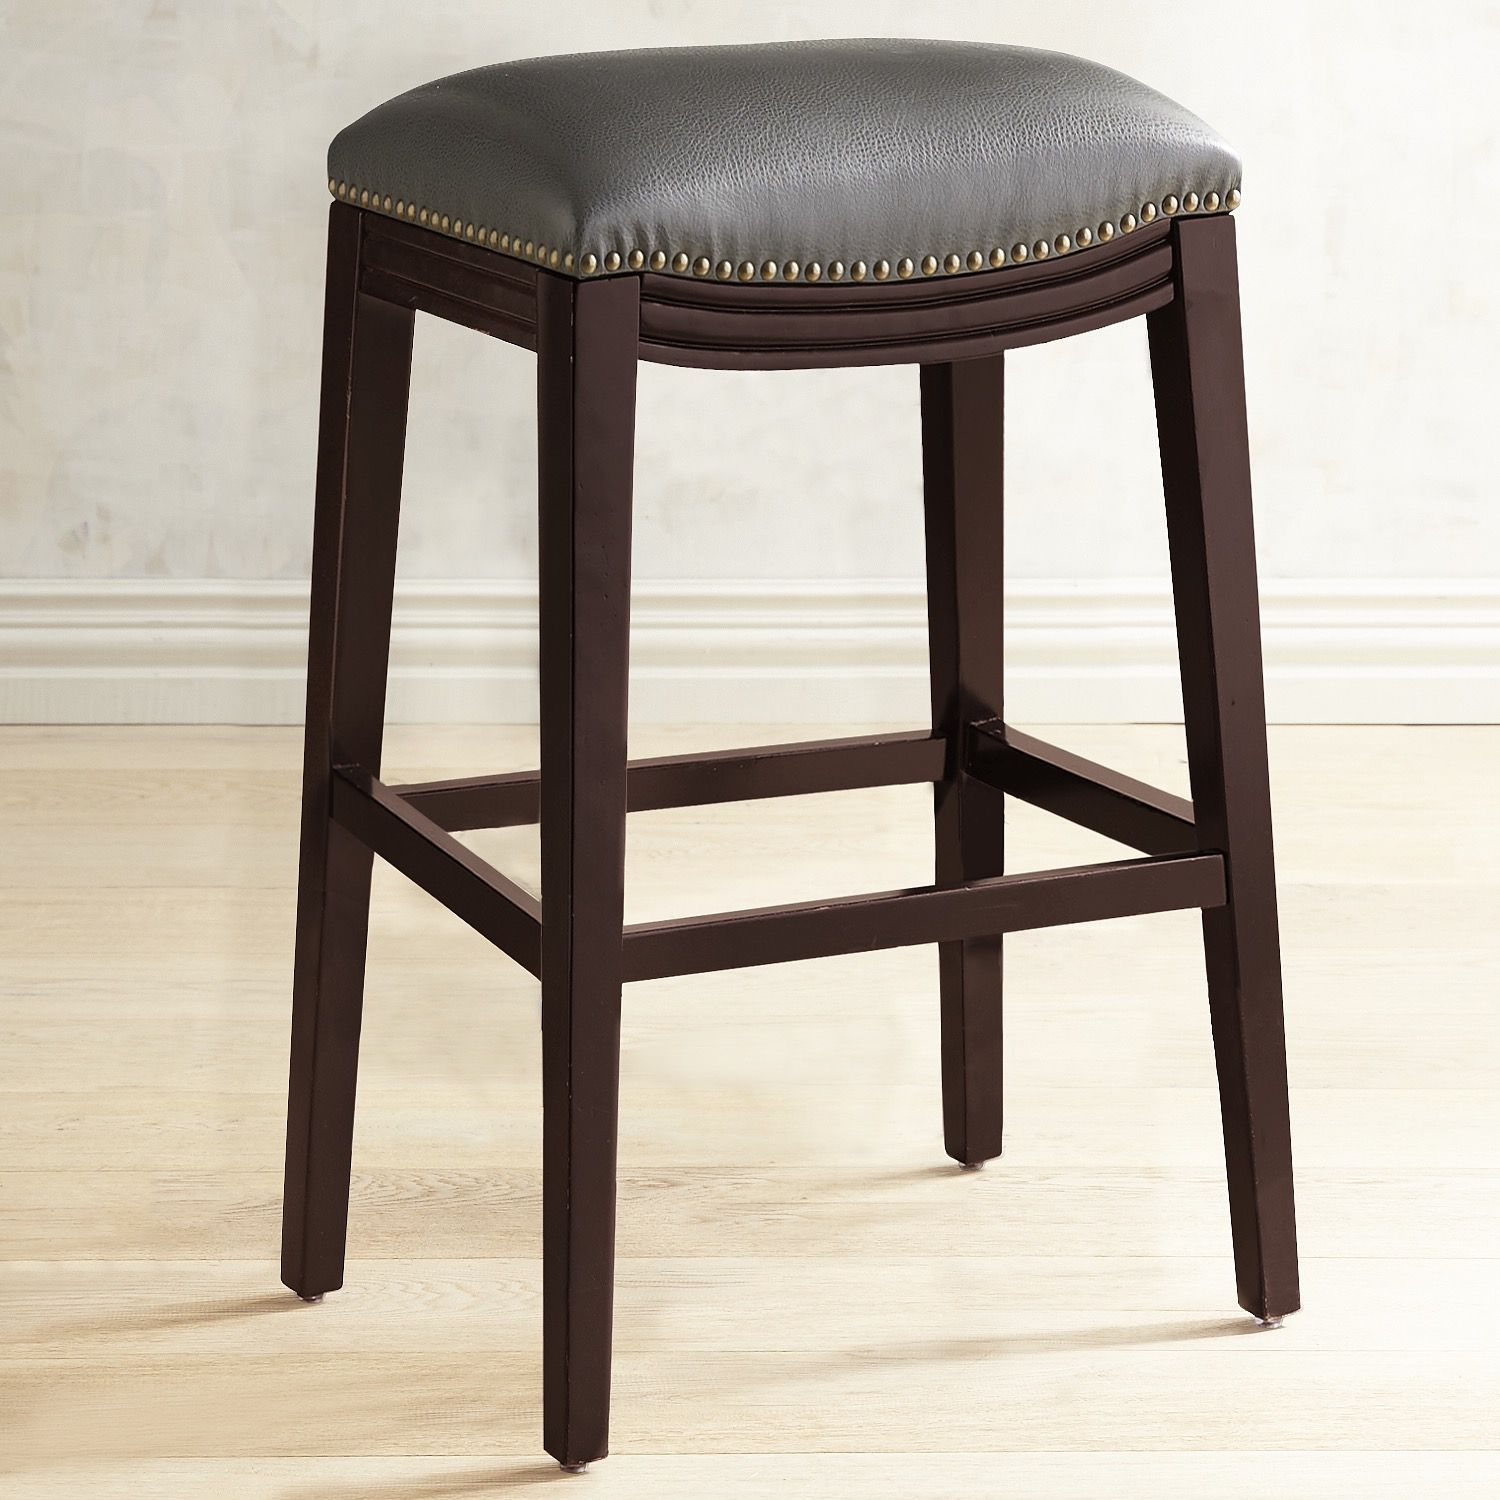 Halsted Pewter Backless Counter Bar Stool Backless Bar Stools